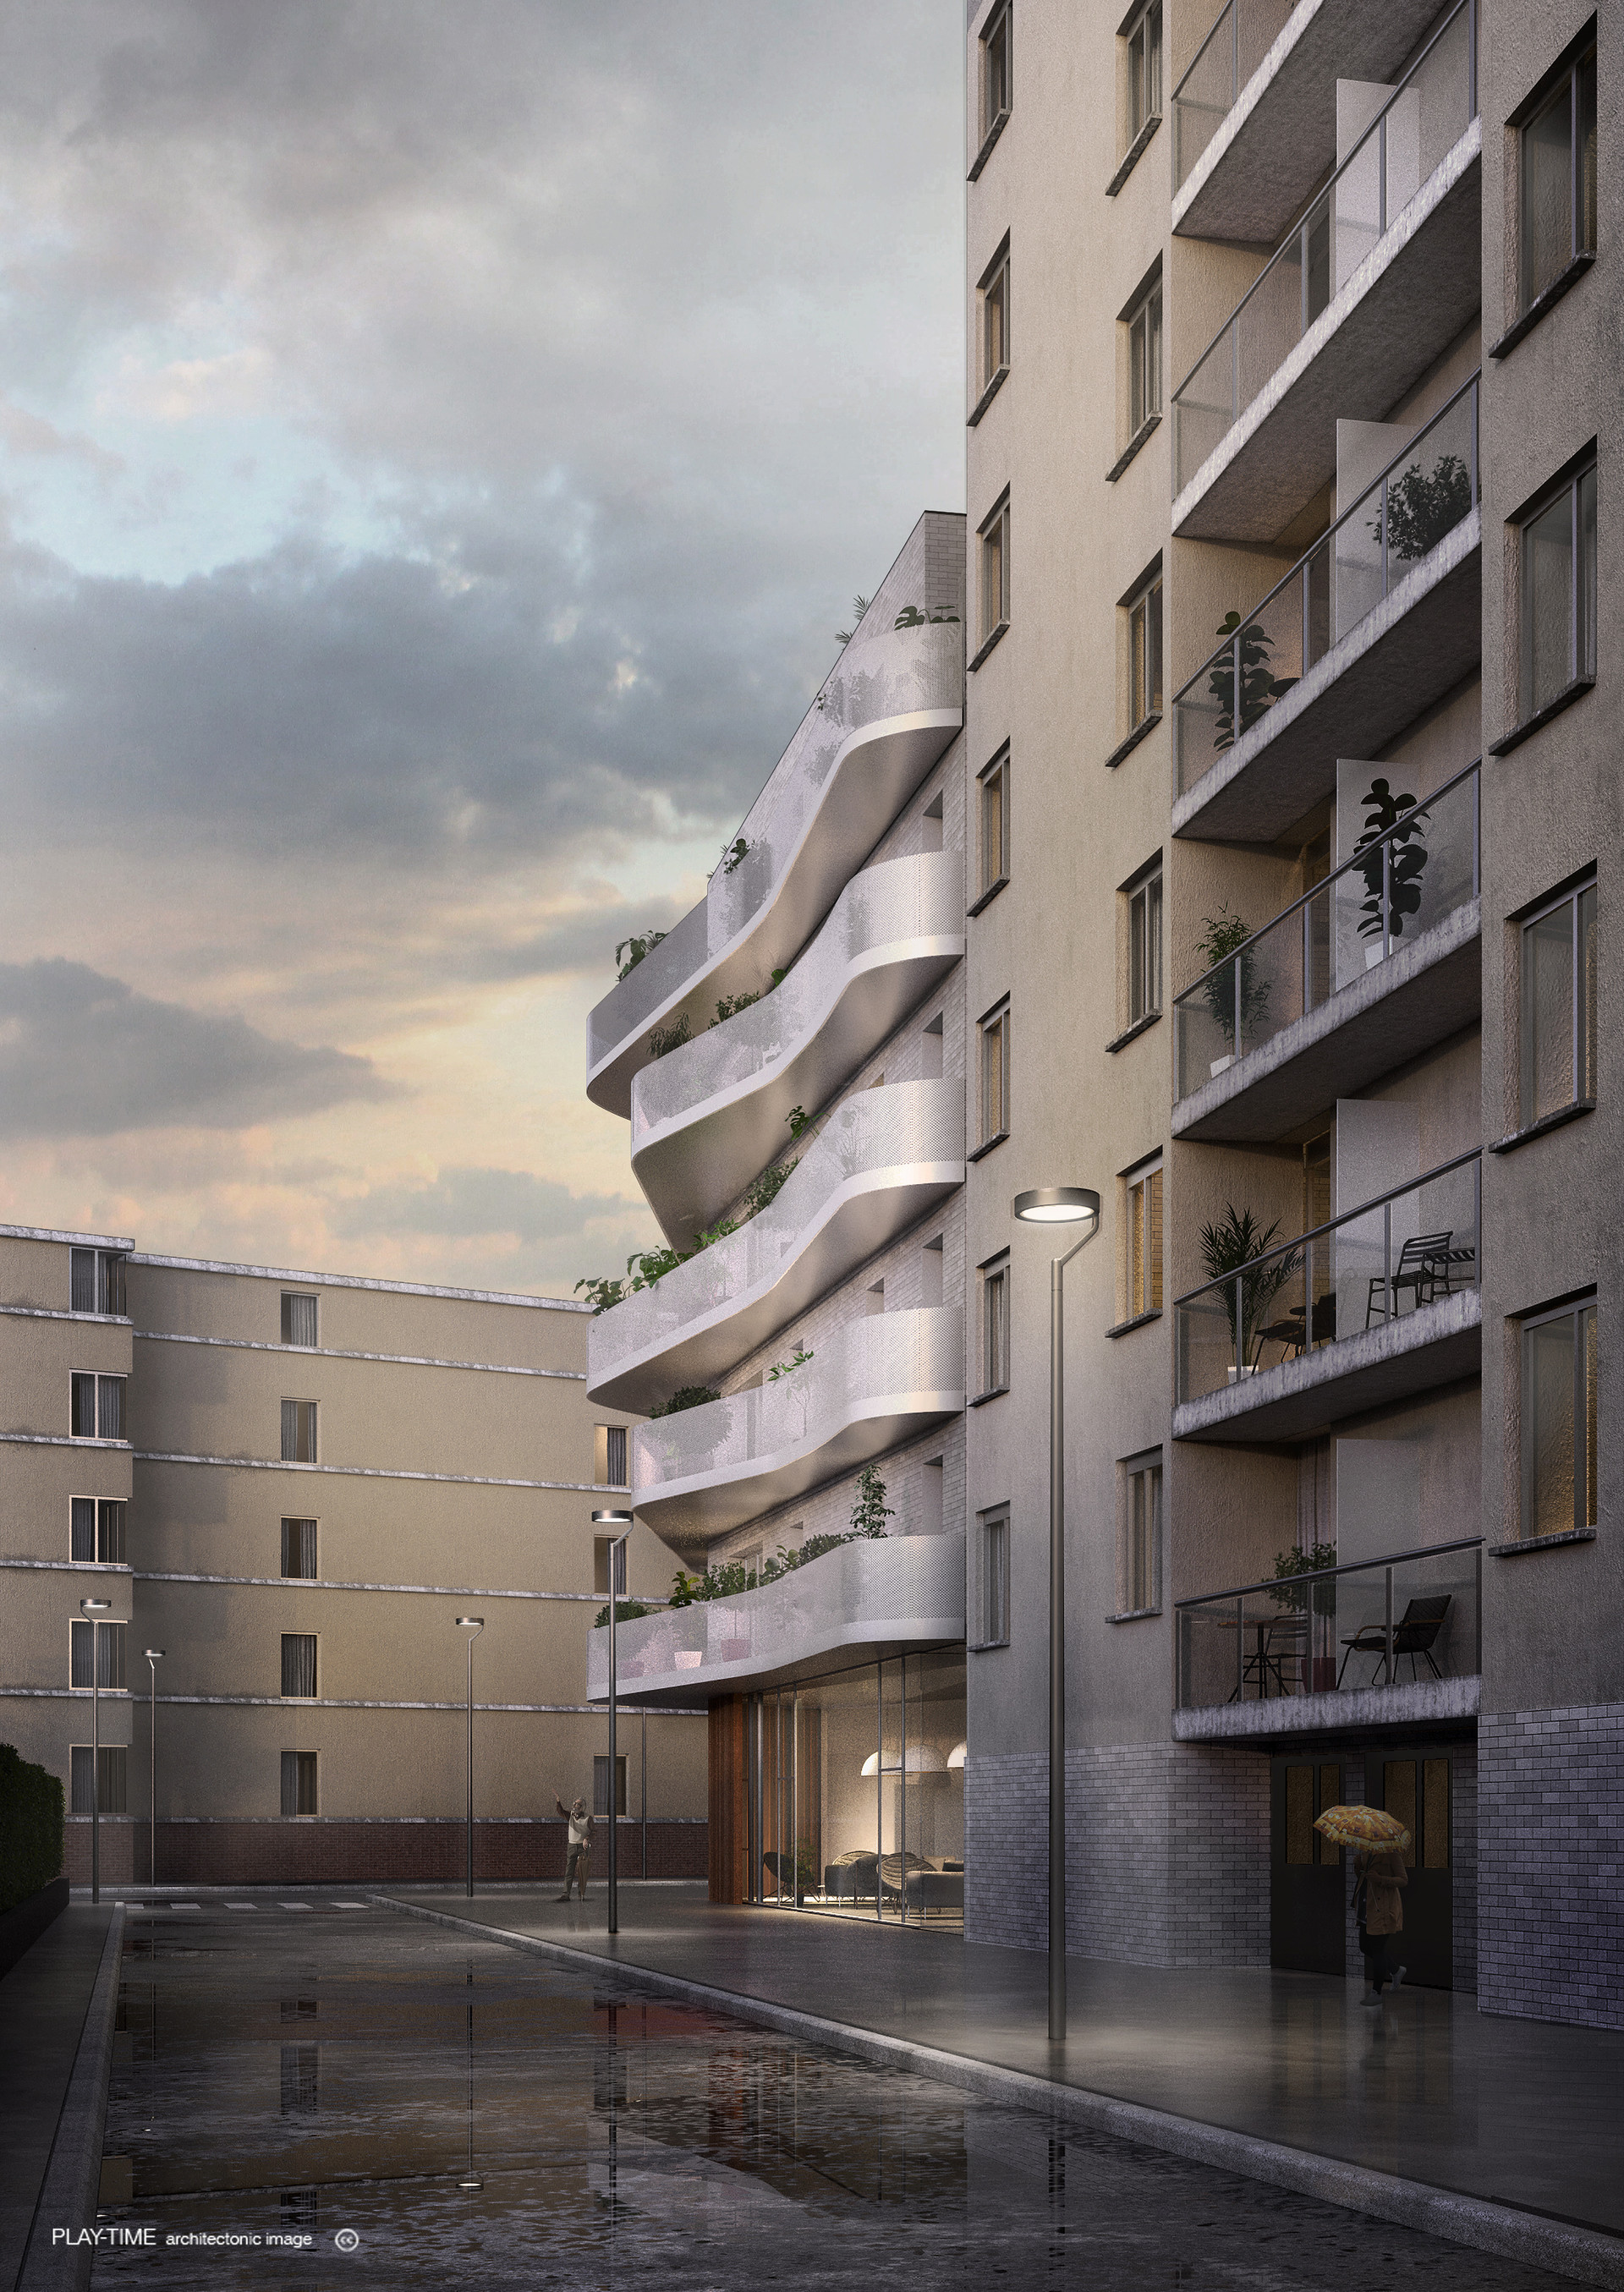 Play time architectonic image rdaa coopimmo logements et creche a bagneux 1r prix 02